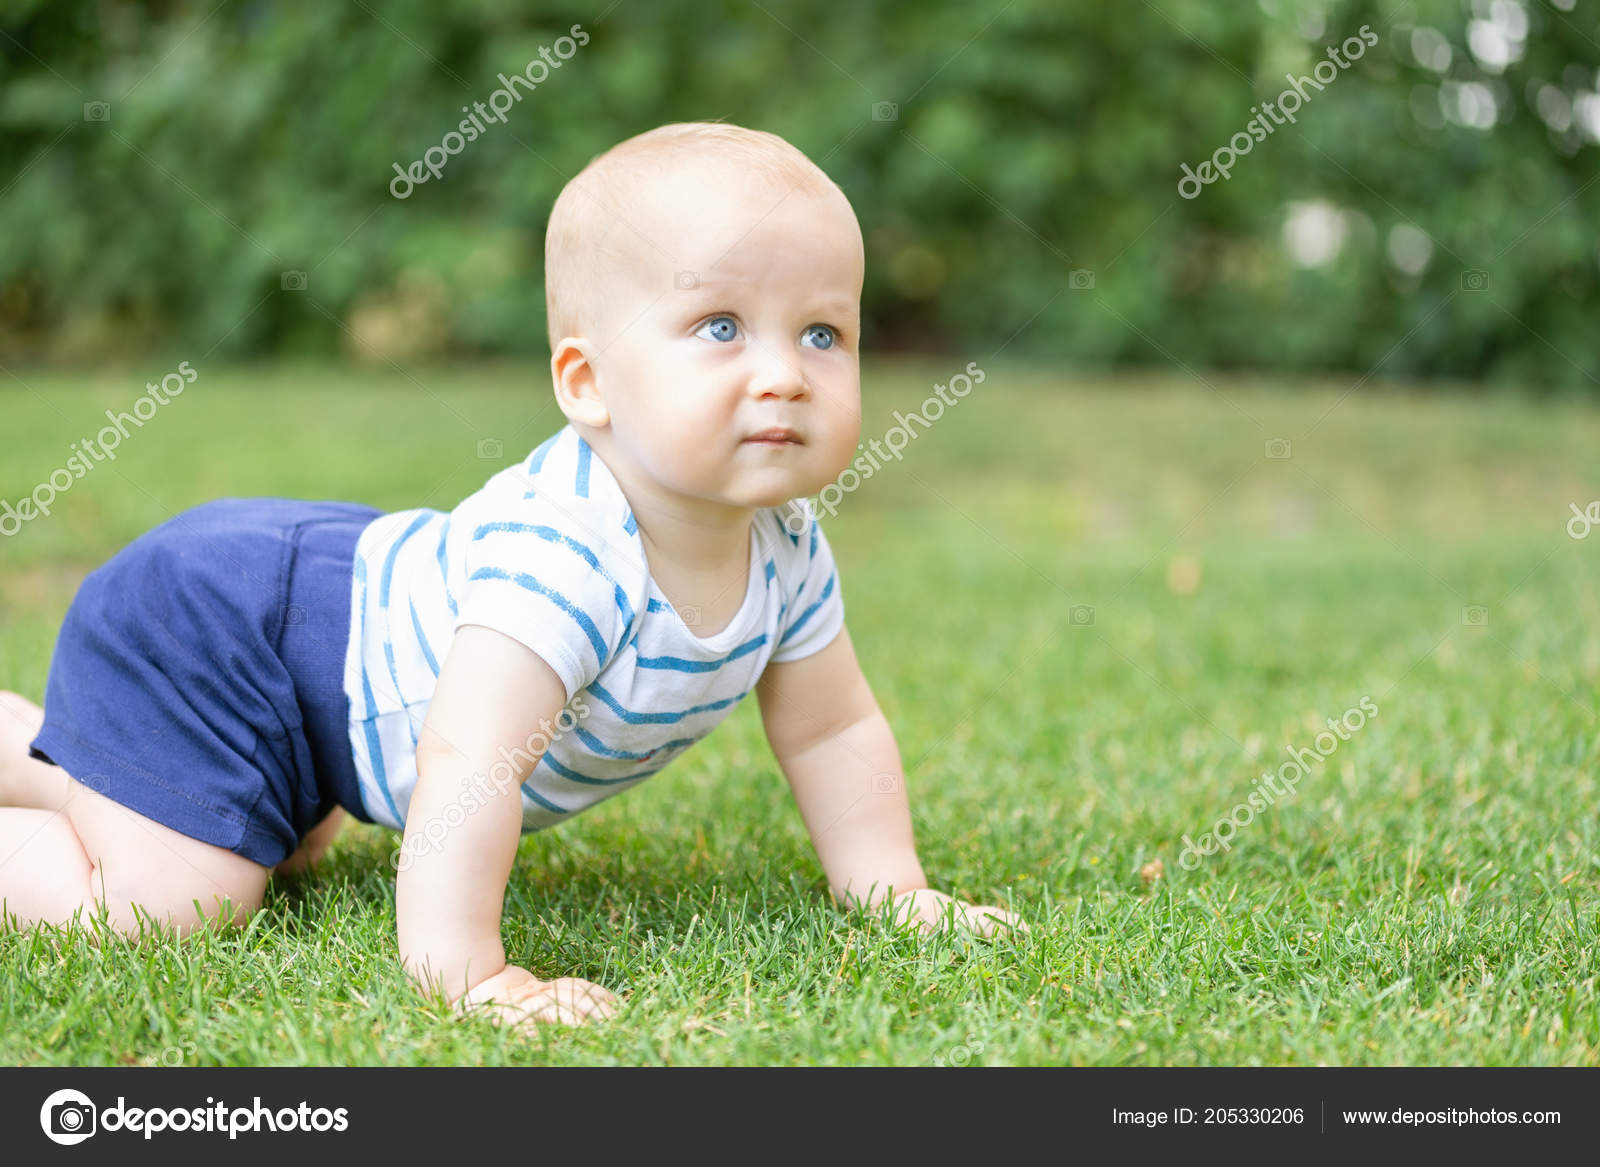 Portrait Of Cute Blond Pensive Baby Boy Crawling On Green Grass Lawn Outdoors Thoughtful Kid Thinking About Something Question Or Idea In Children Mind